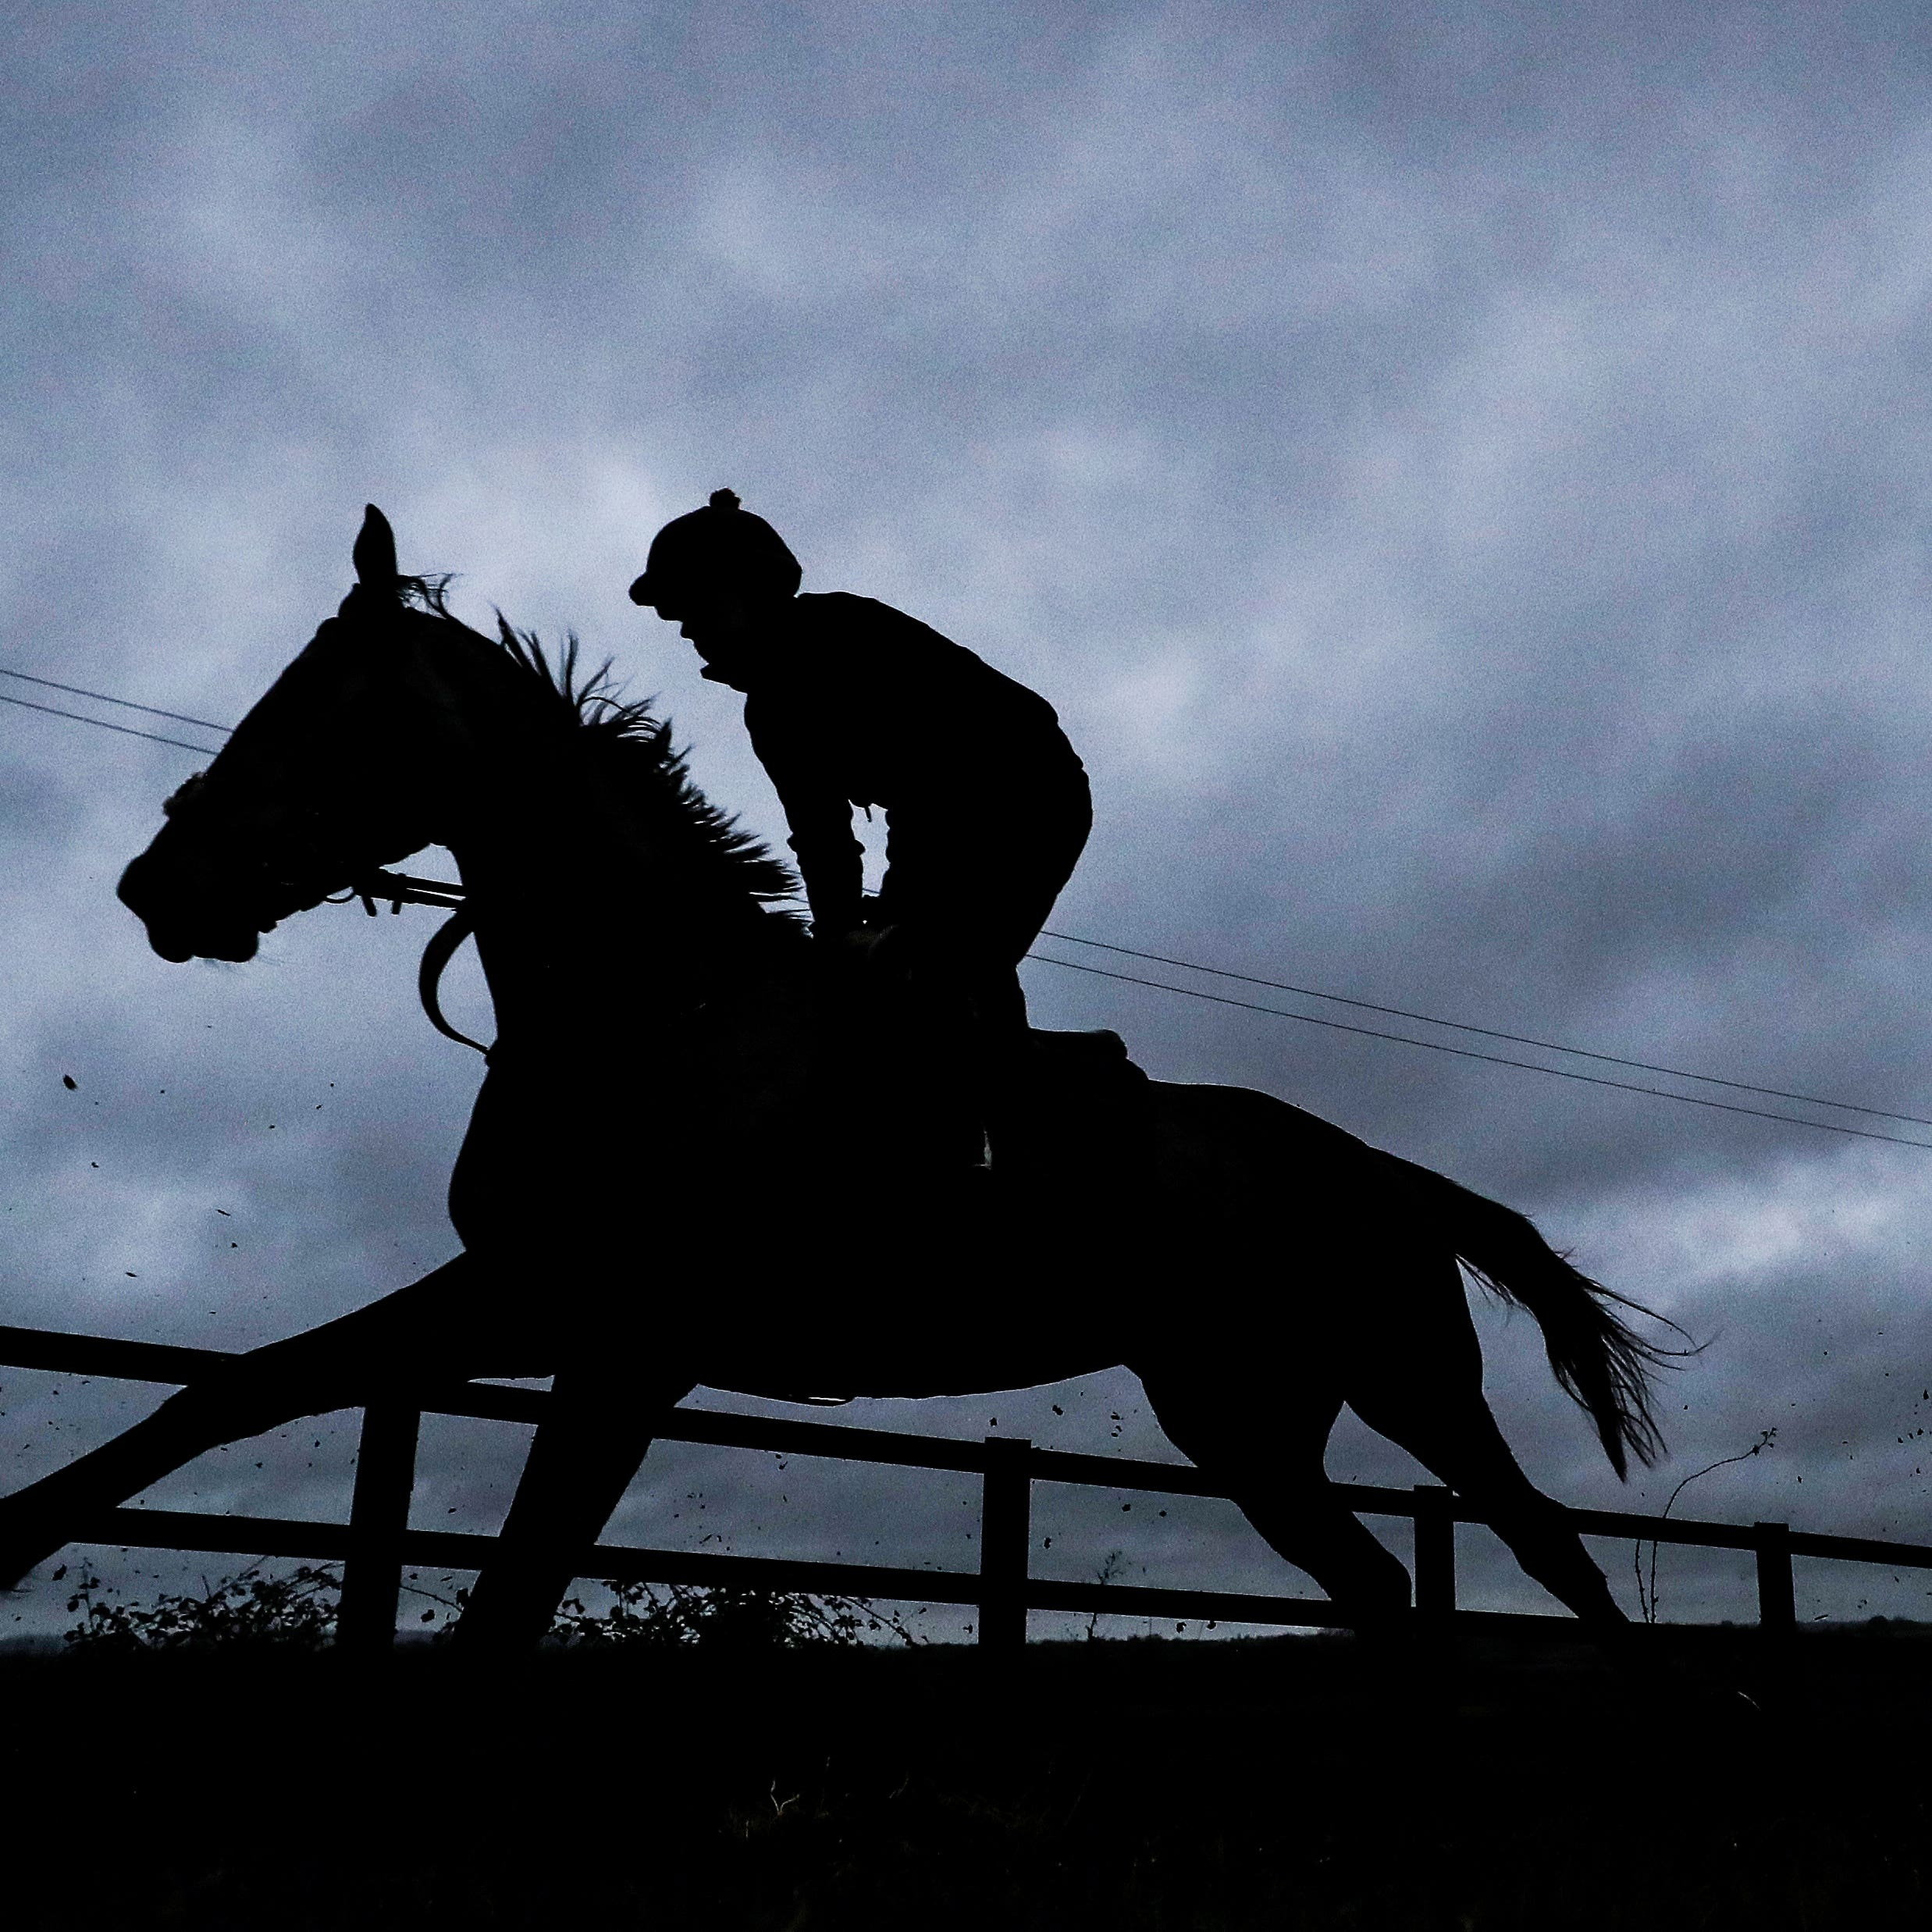 The BHA will decide on Monday if racing can resume on Wednesday